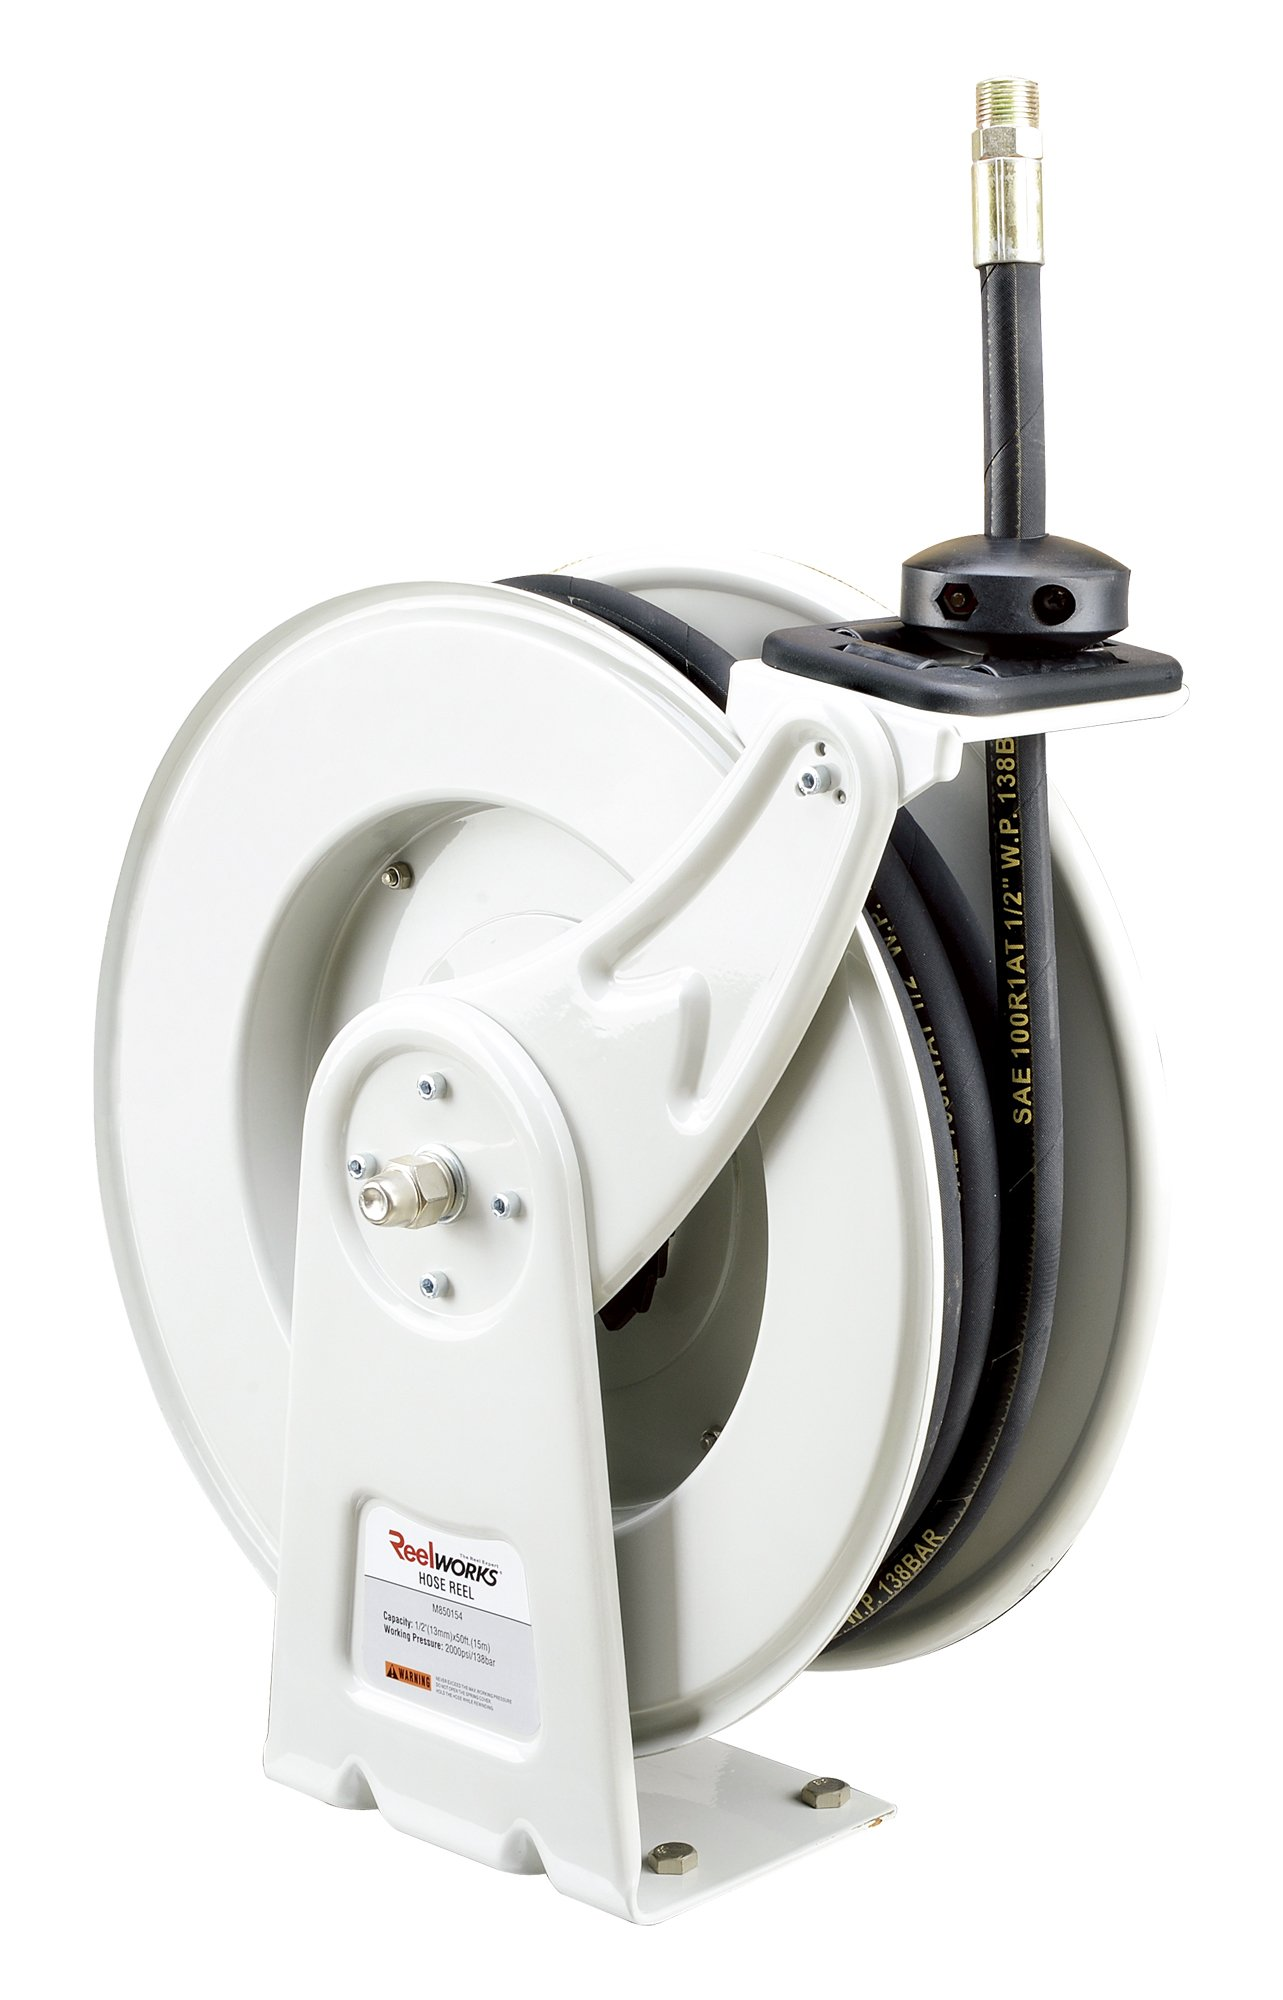 REELWORKS Heavy Duty Spring Driven Hose Reel (1/2'' x 50 Ft. OIL HOSE REEL) by Reelworks (Image #7)